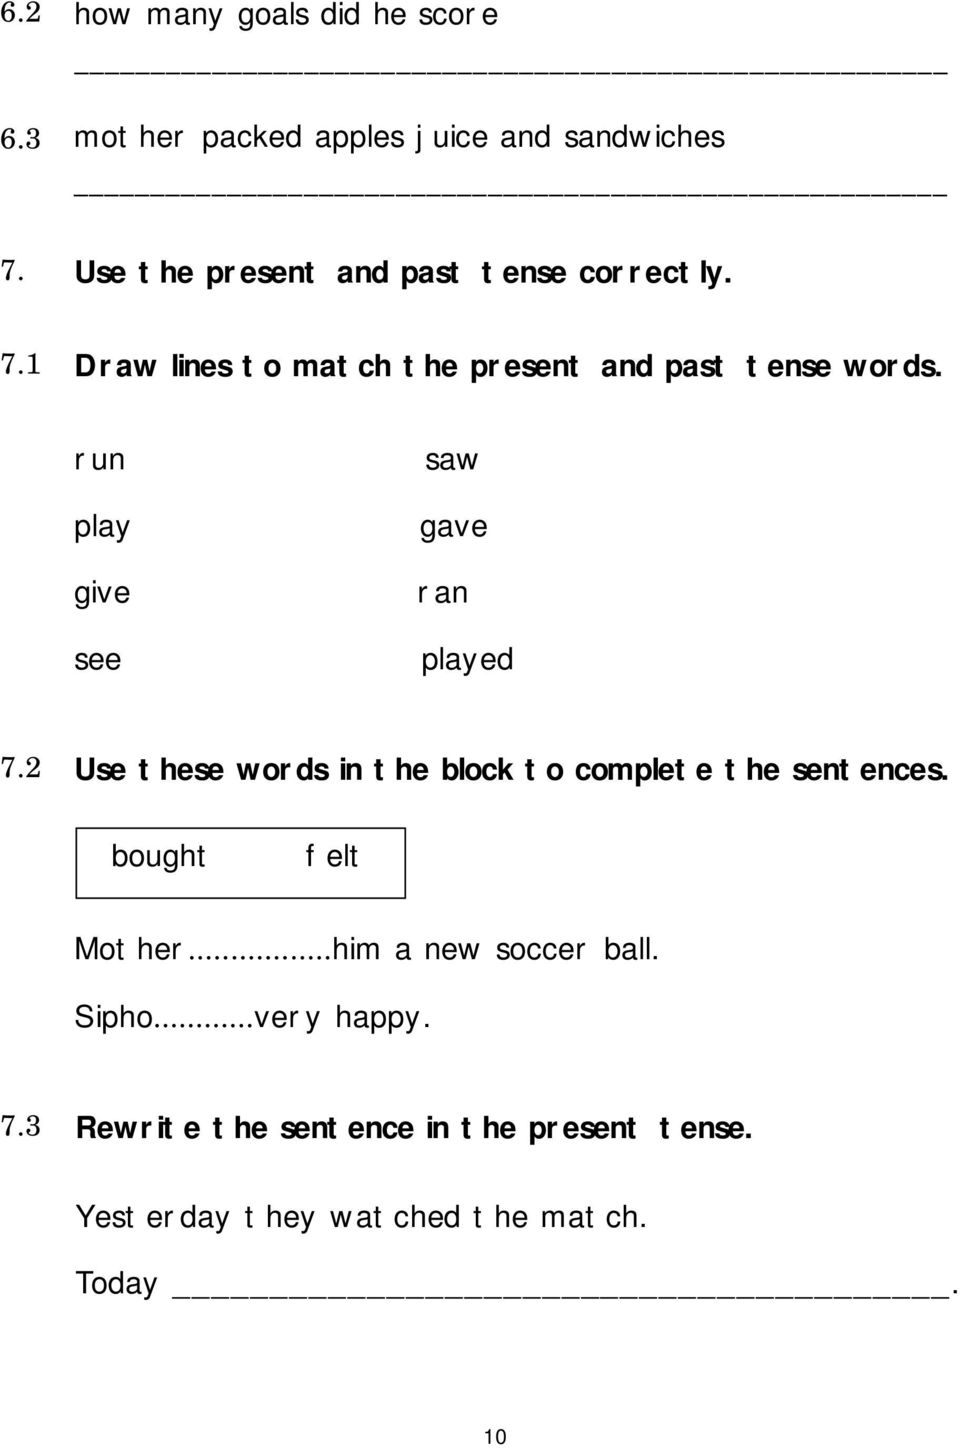 run play give see saw gave ran played 7.2 Use these words in the block to complete the sentences.